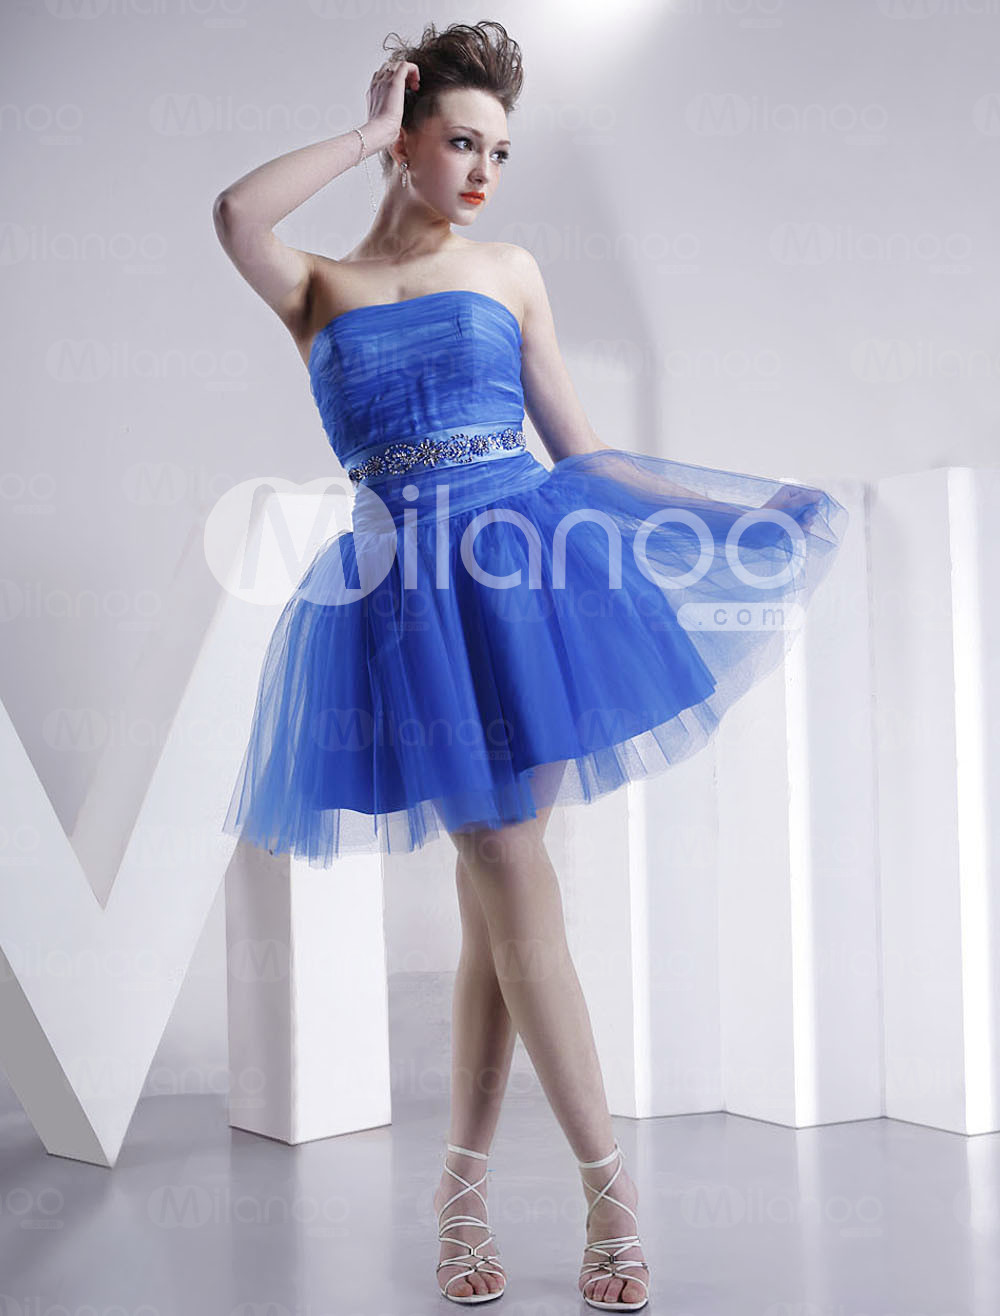 Strapless Beaded Tulle Skirt Satin Summer Cocktail Dress :  strapless summer satin cocktail dress